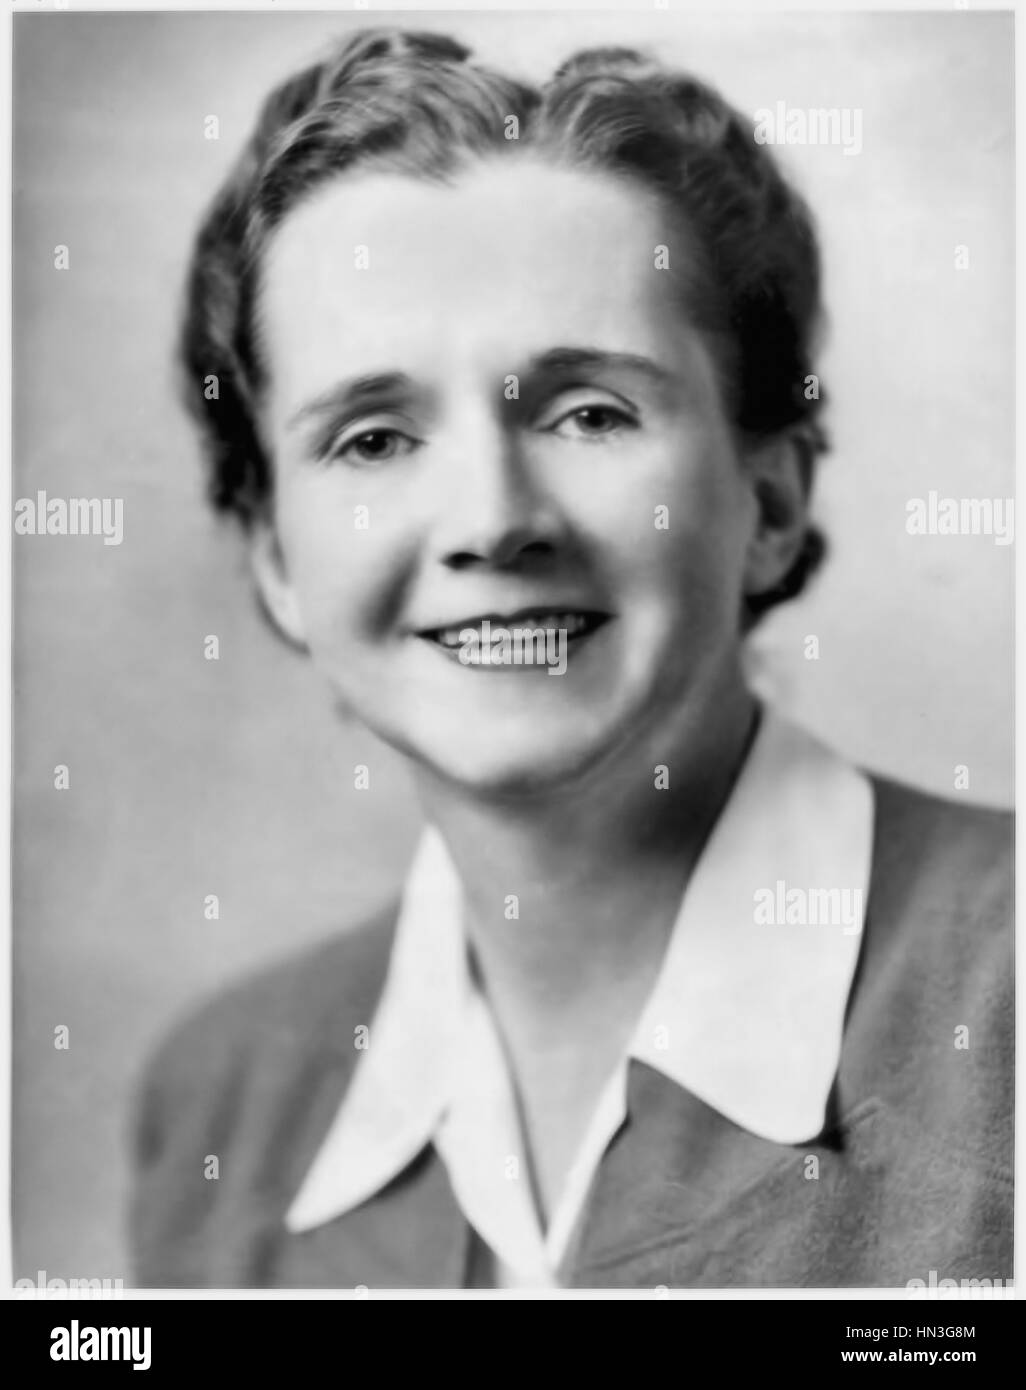 Rachel Carson (1907-1964) American marine biologist and author of 'Silent Spring' (1962) about the environmental - Stock Image